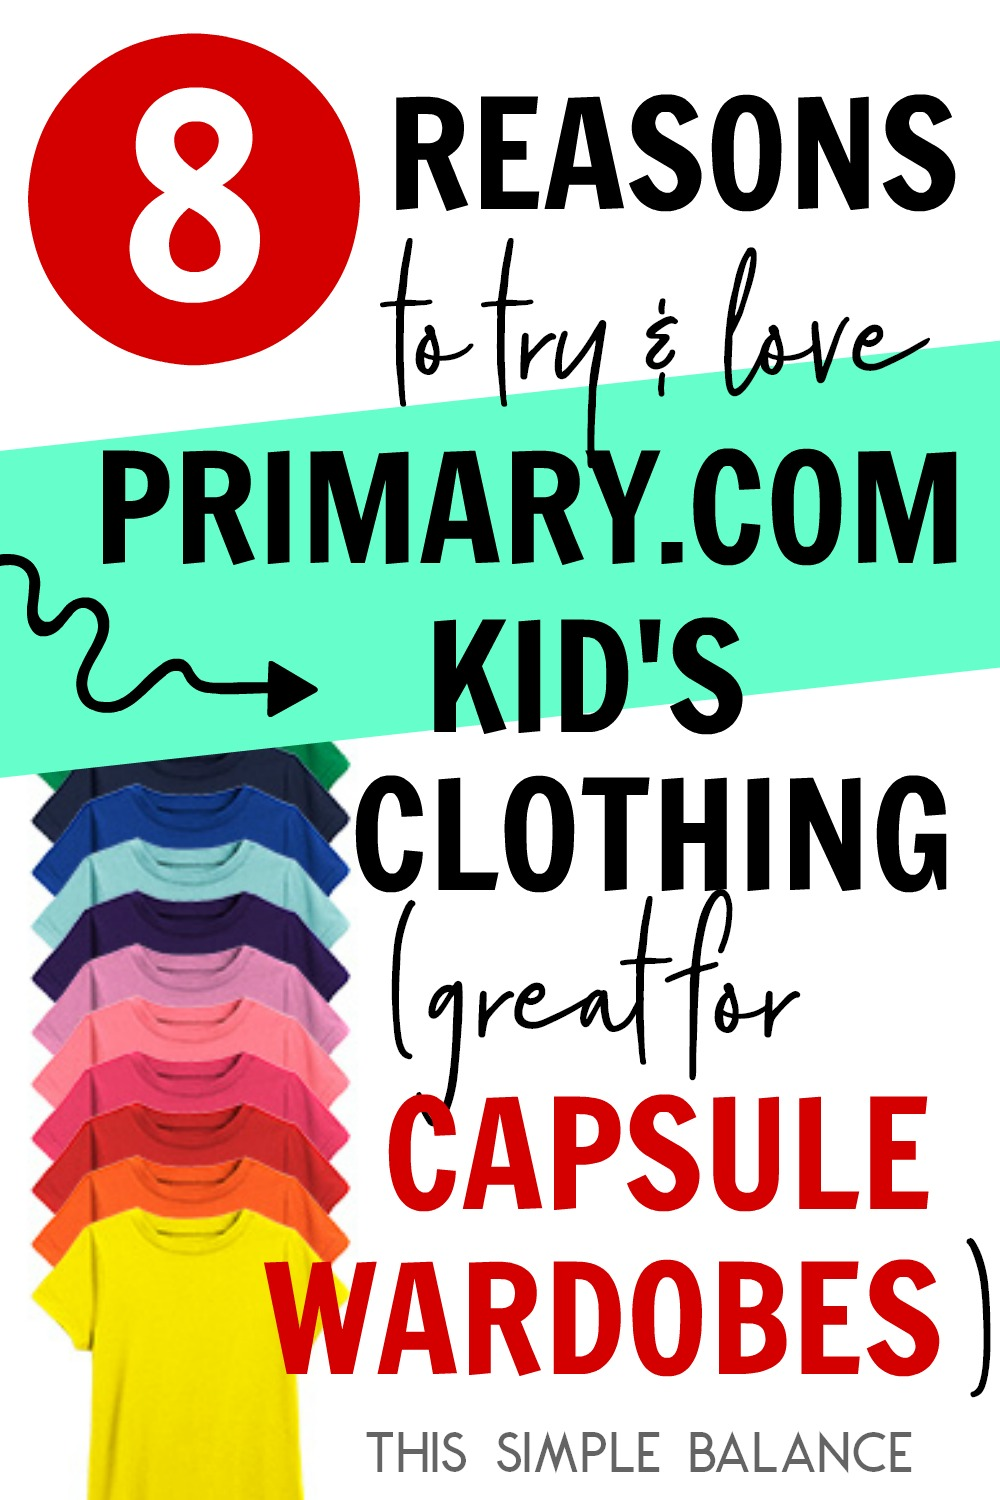 Primary.com kids' clothes have been the perfect fit for my daughter - great for easily creating capsule wardrobes, ditching ridiculous slogans and graphics, and accommodating kids who hate tags and seams in inconvenient places.